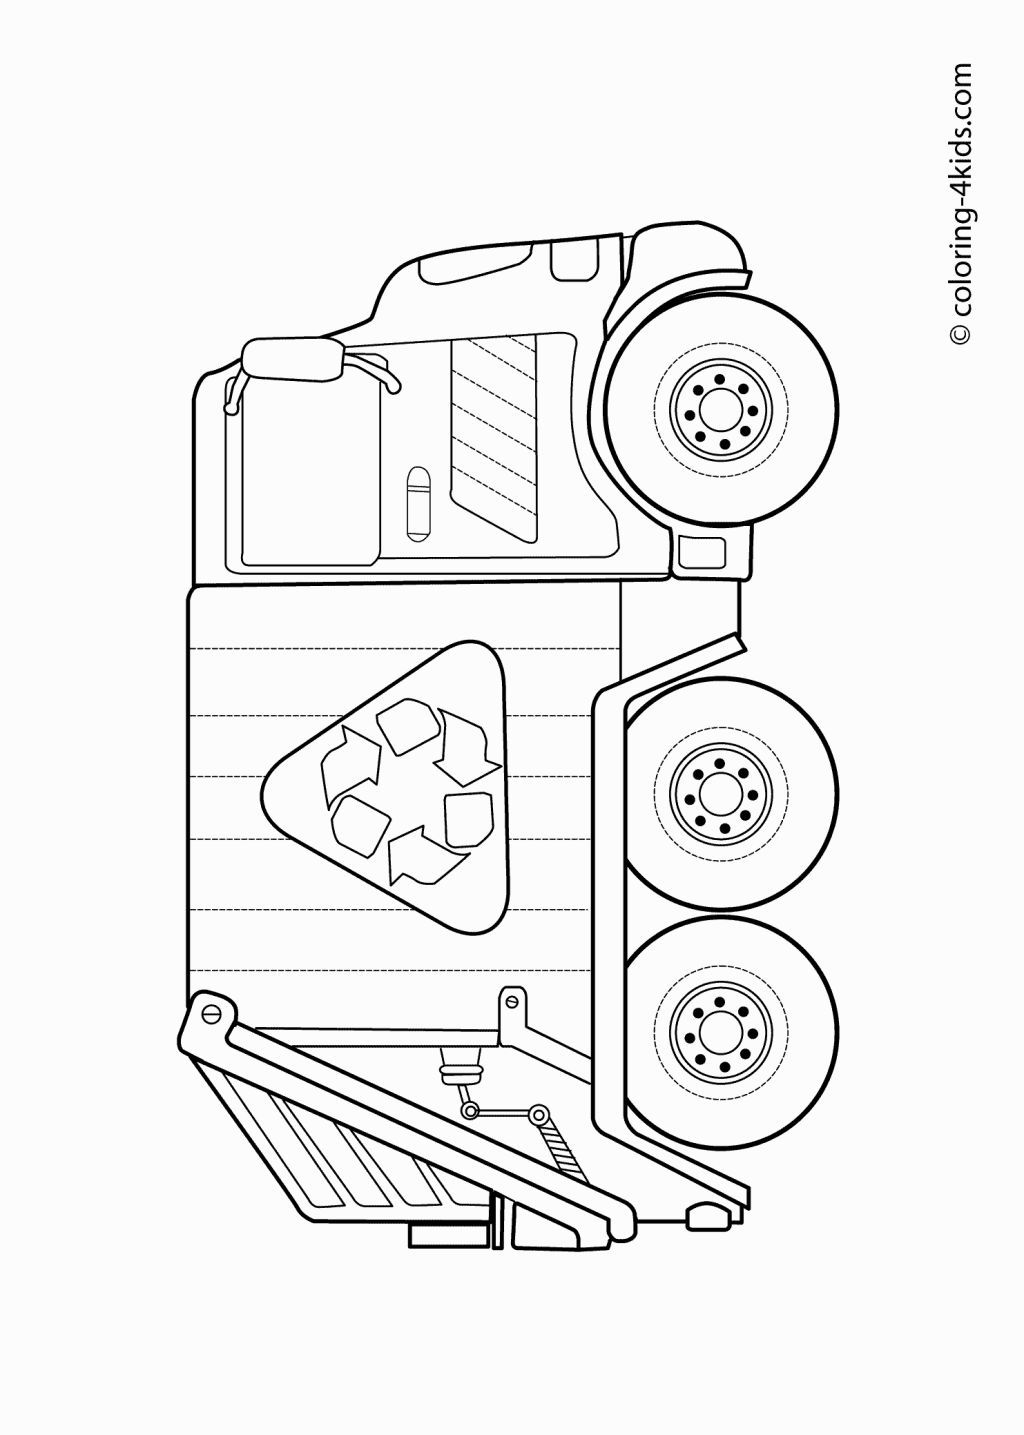 Garbage Truck Coloring Page | coloring | Pinterest | Garbage truck ...